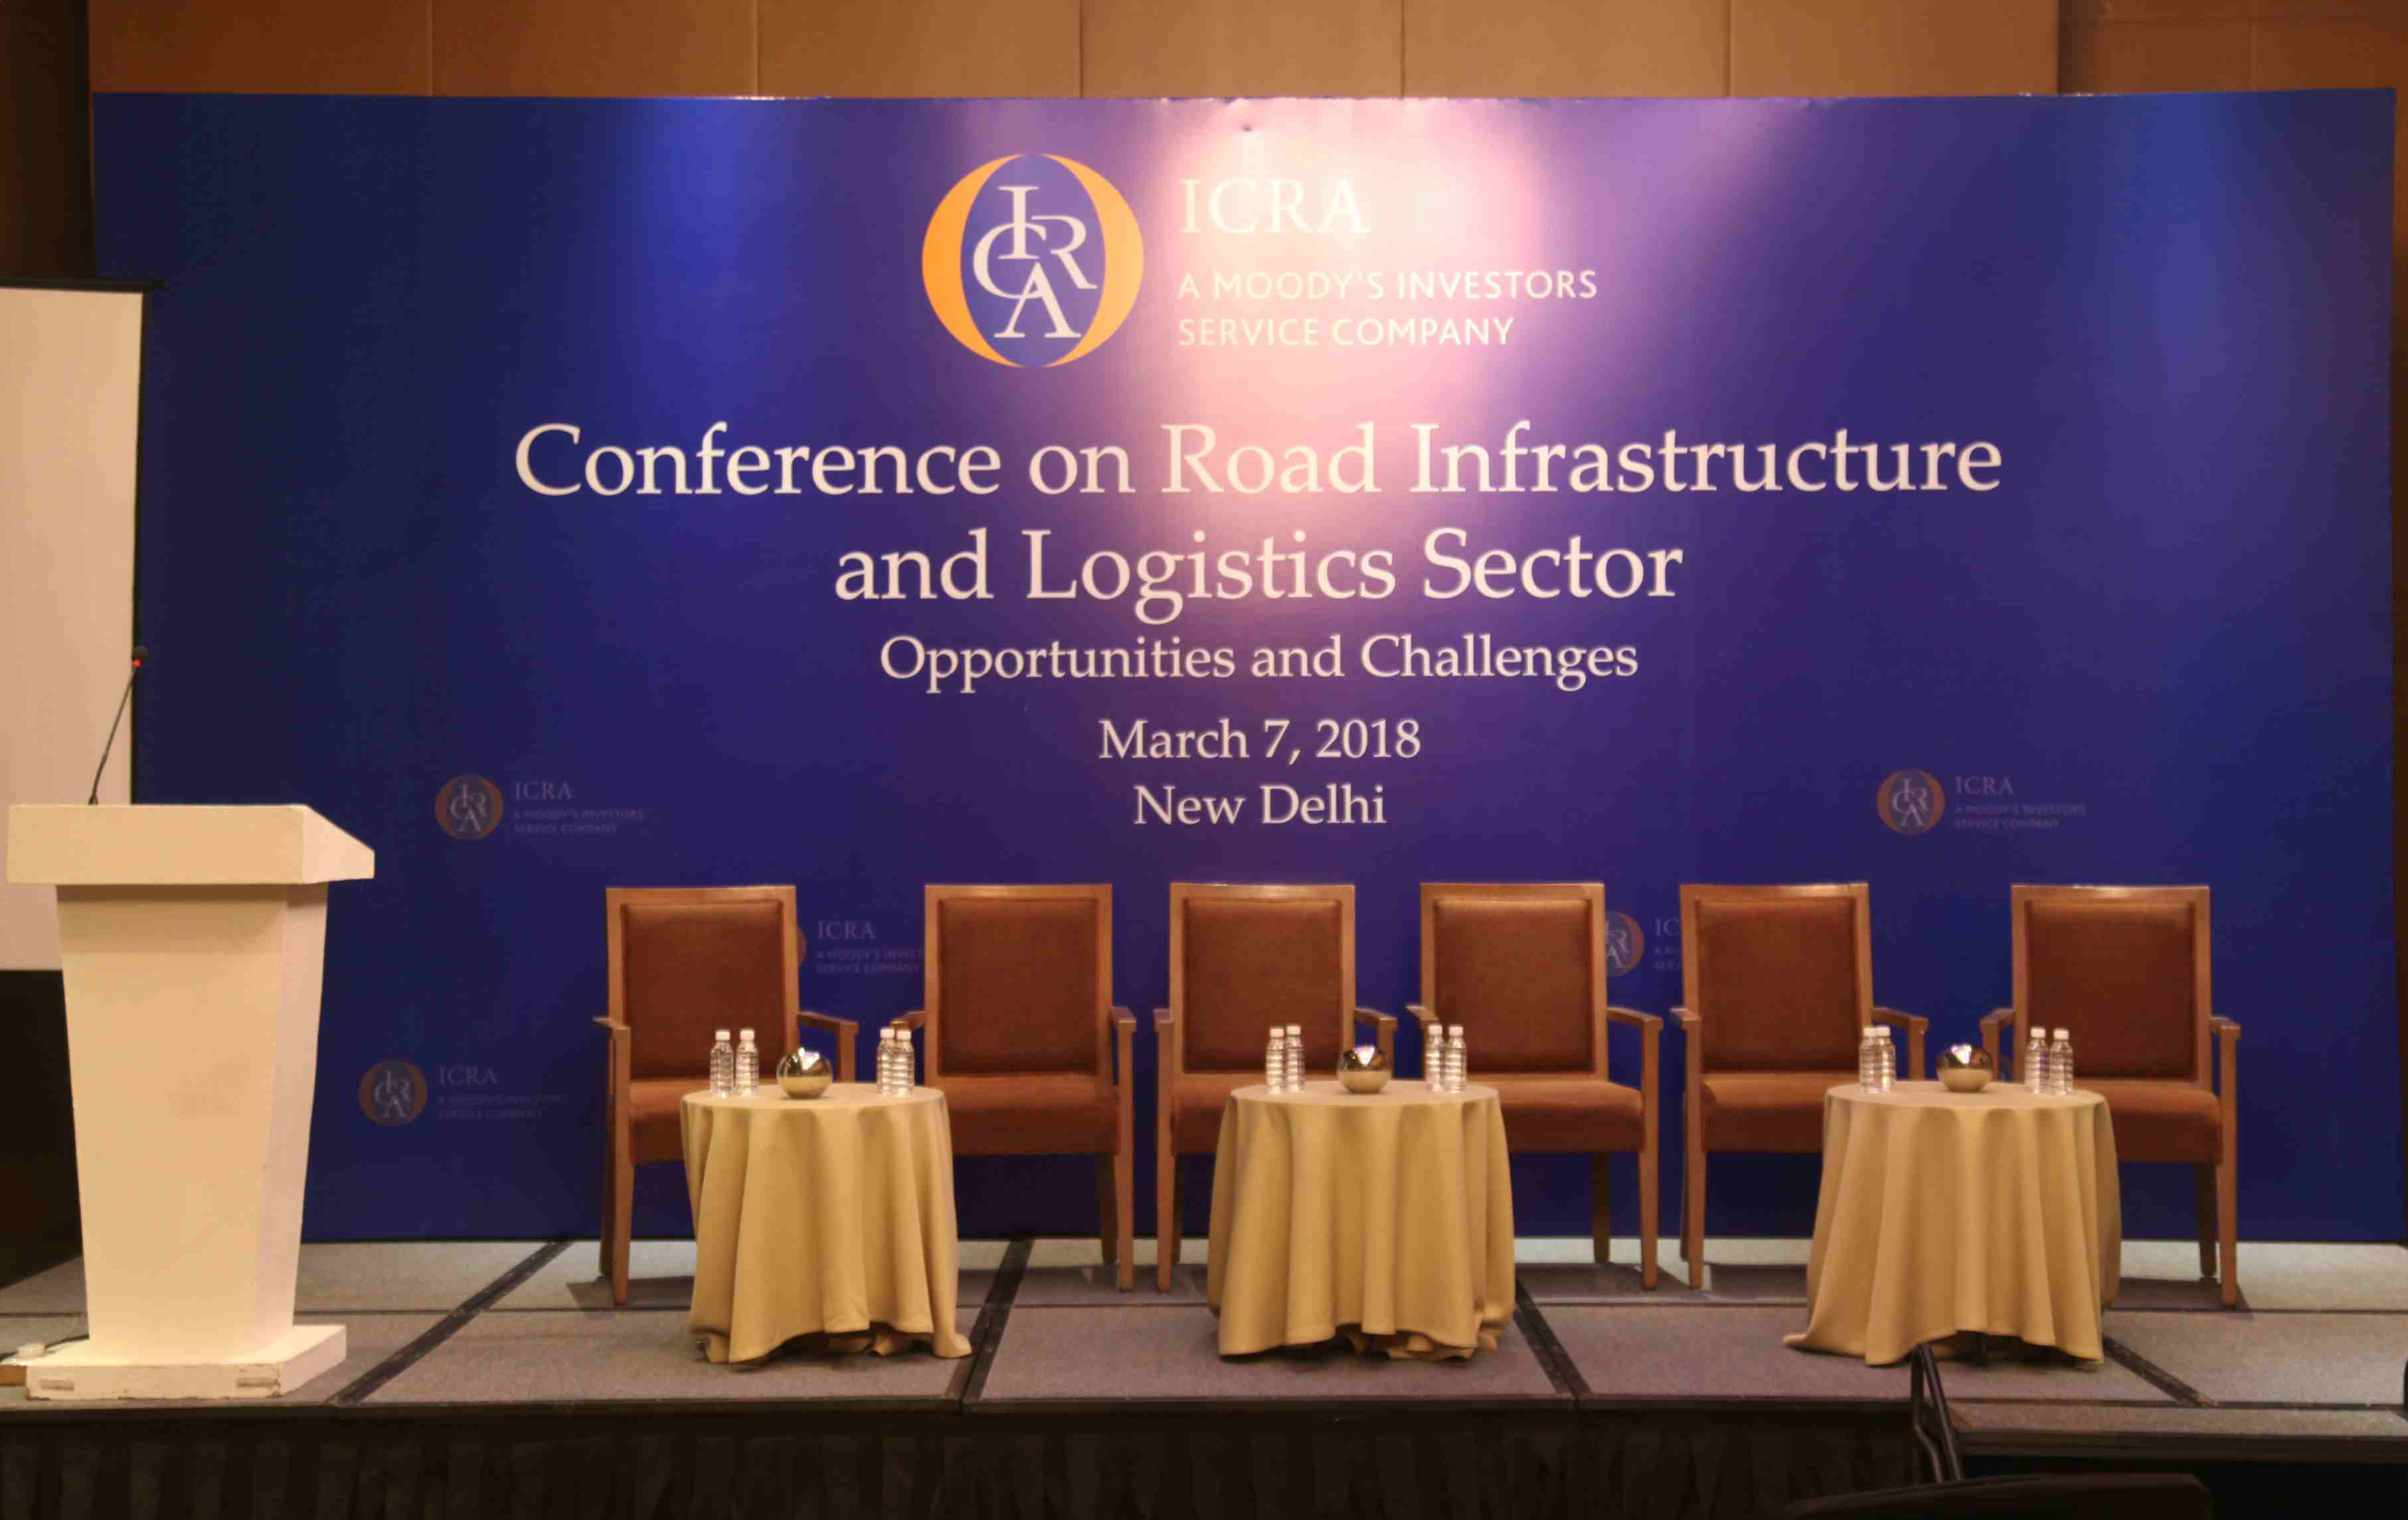 Stage all set for ICRA Conference on Road Infrastructure and Logistics sector in New Delhi